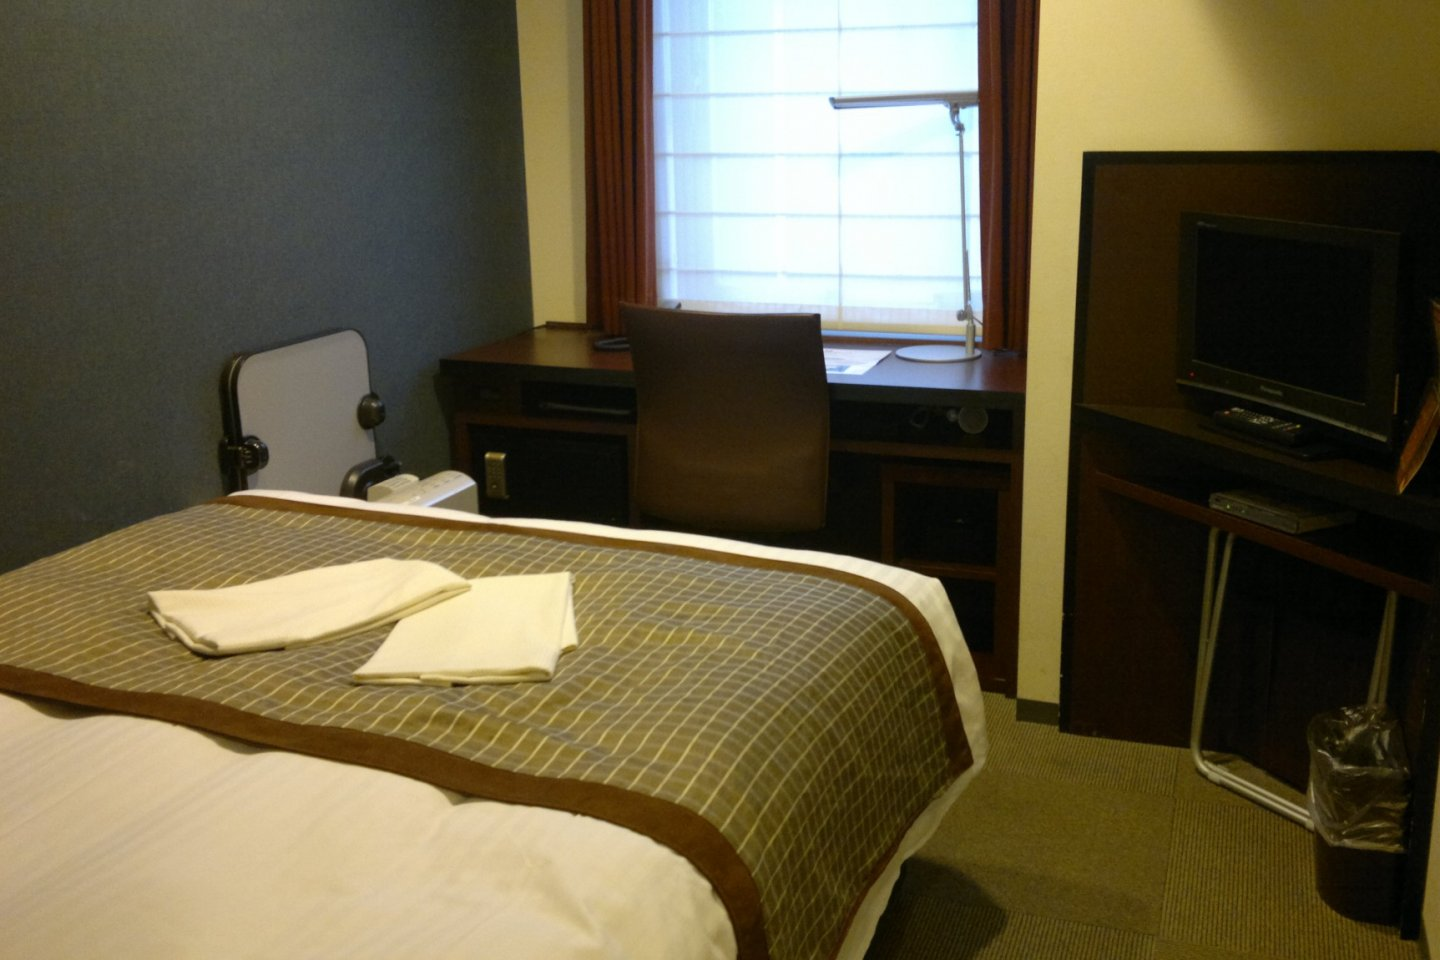 The inside of Superior Queen room.